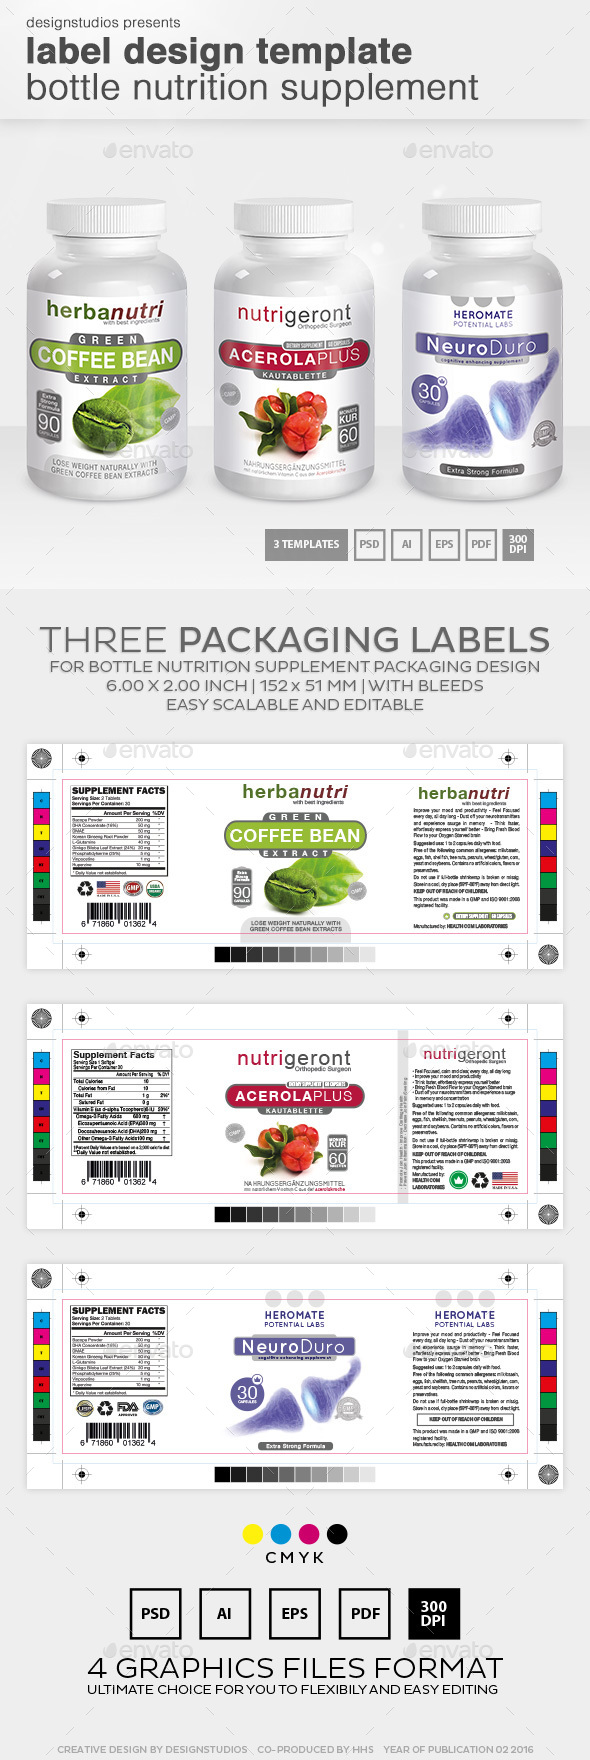 Label Design Template Bottle Nutrition Supplement by designstudios